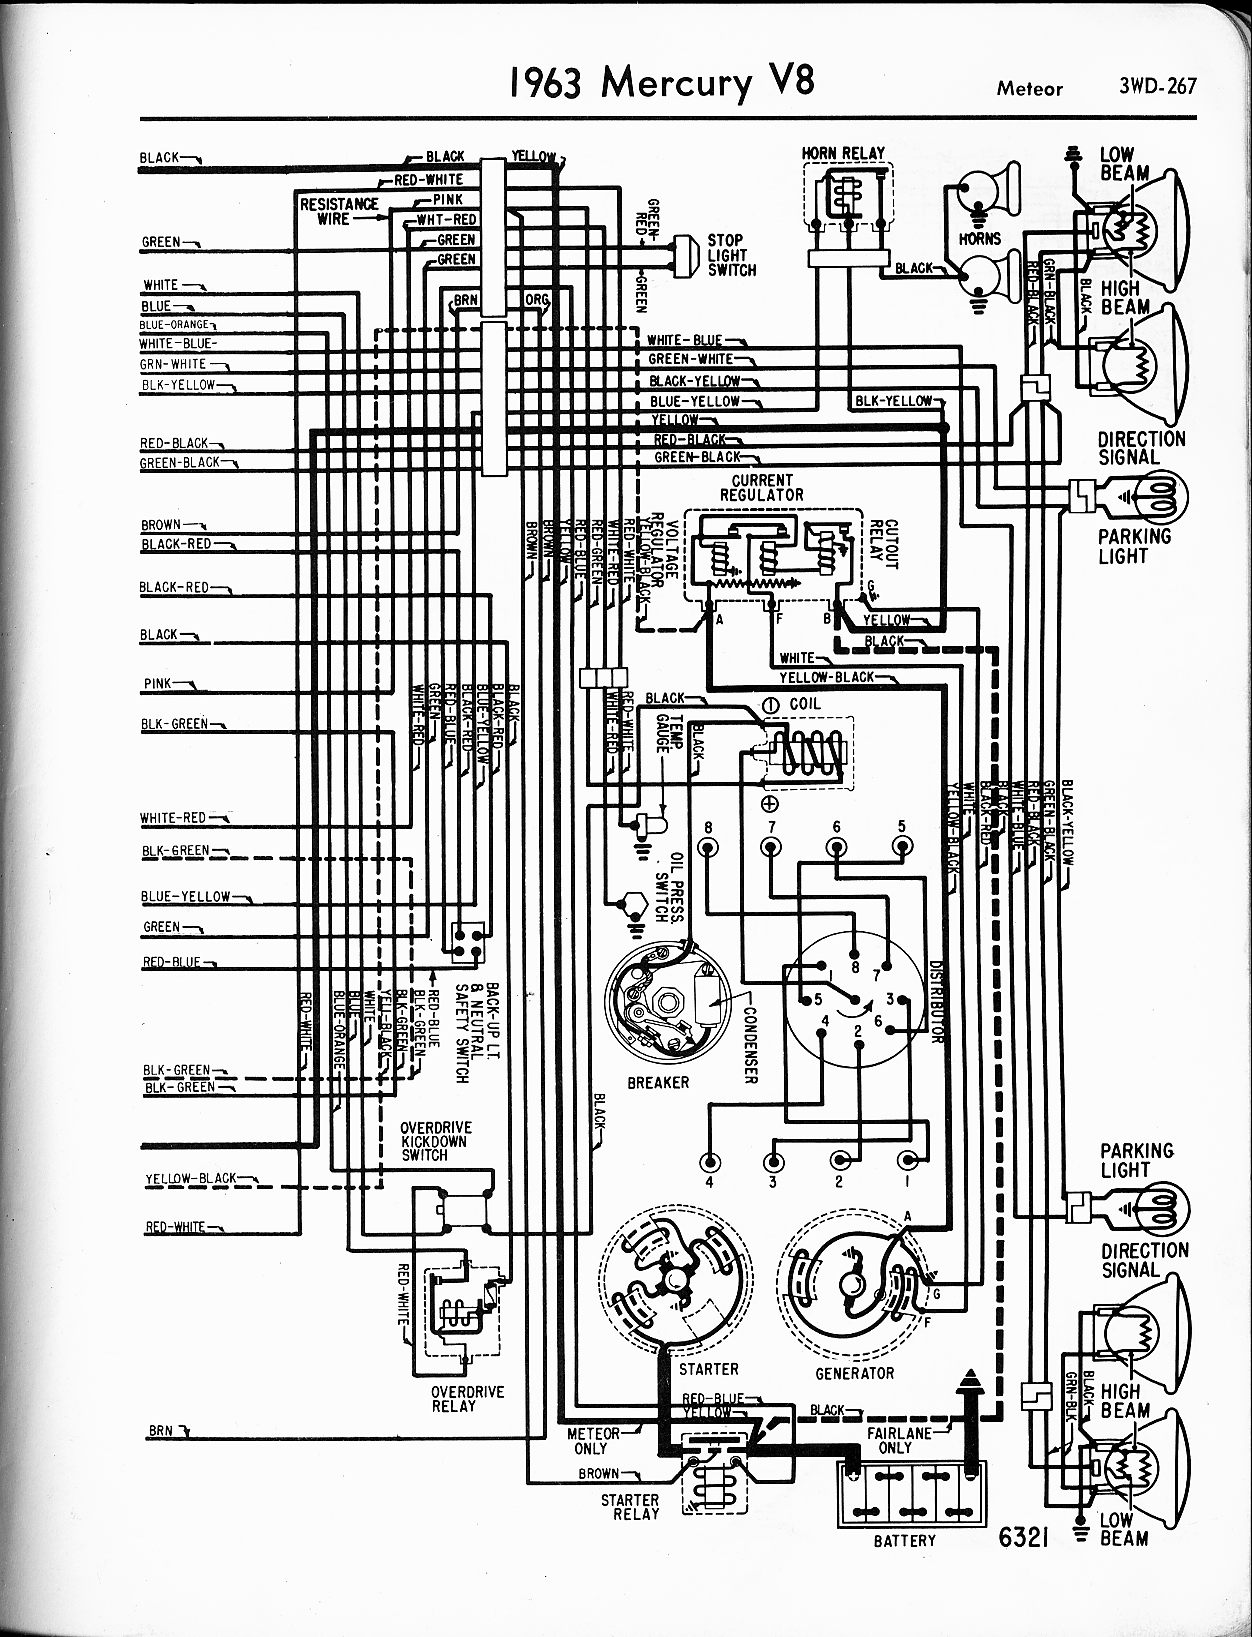 1973 lincoln continental wiring diagram wiring diagram 1970 Lincoln Continental Mark V 1973 lincoln continental wiring diagram wiring diagram1973 lincoln continental wiring diagram wiring librarymercury wiring diagrams the